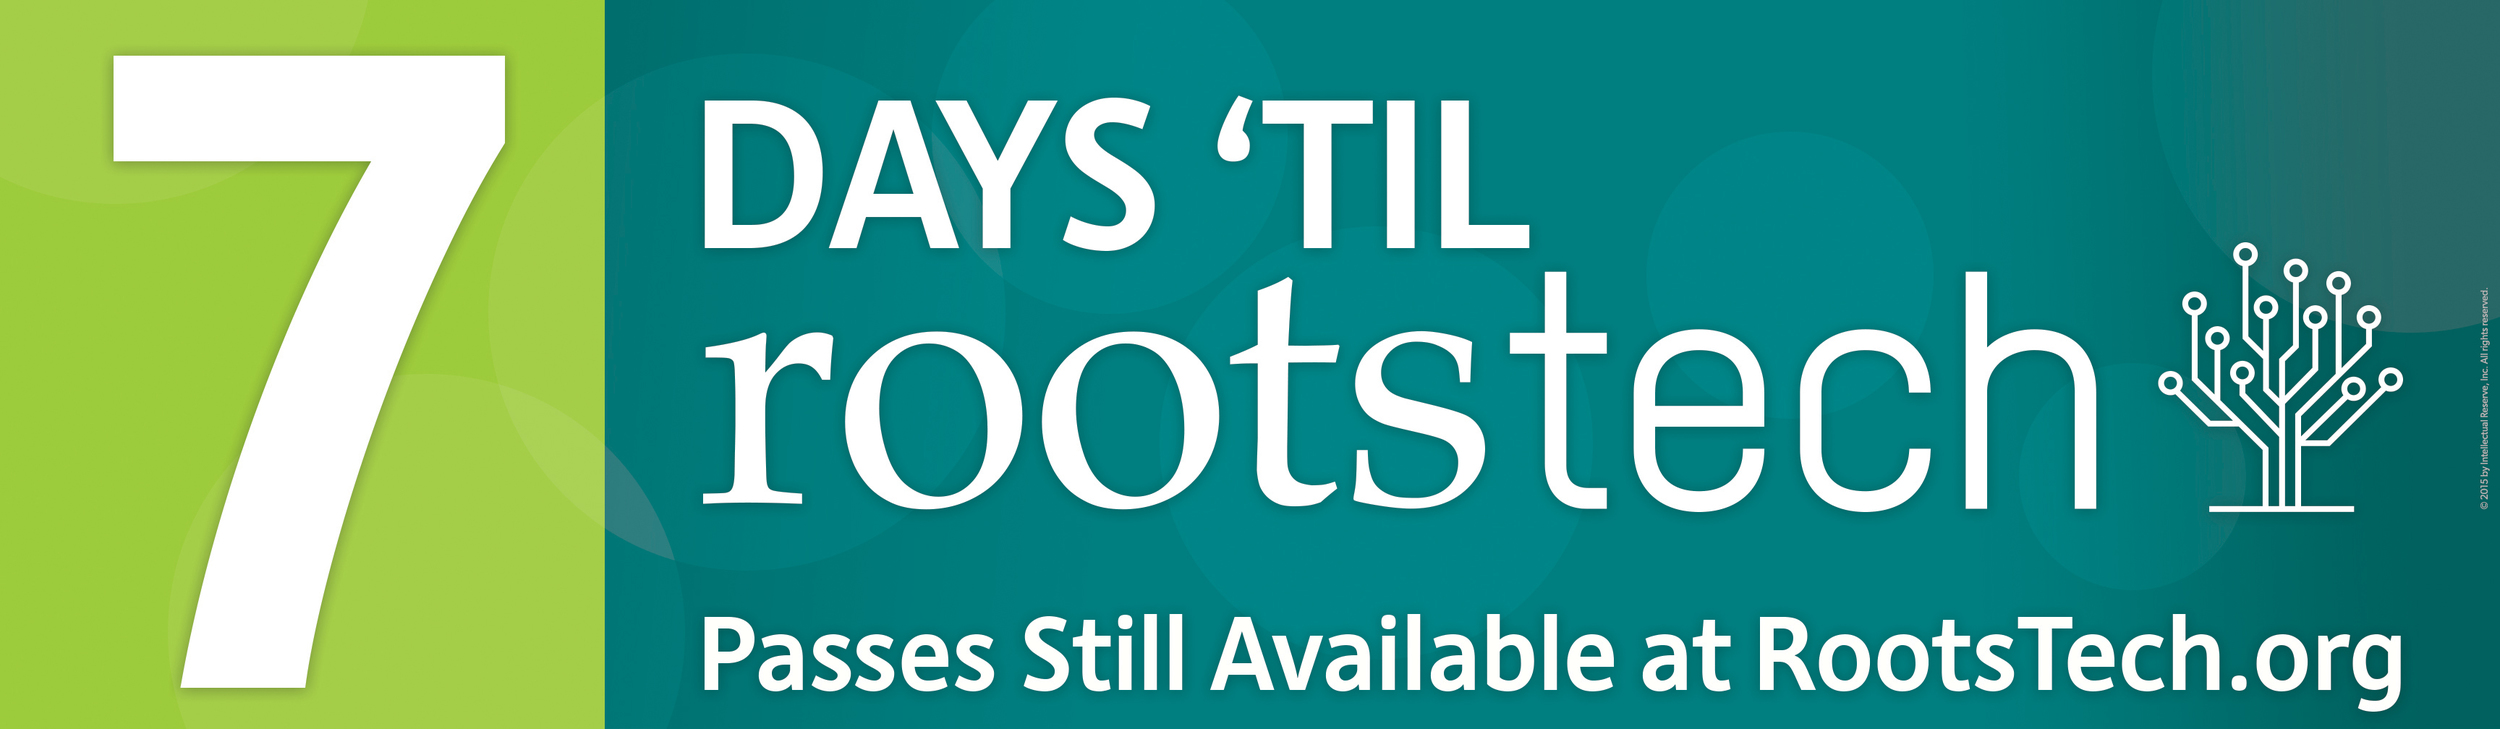 Rootstech_countdown billboards_4.jpg